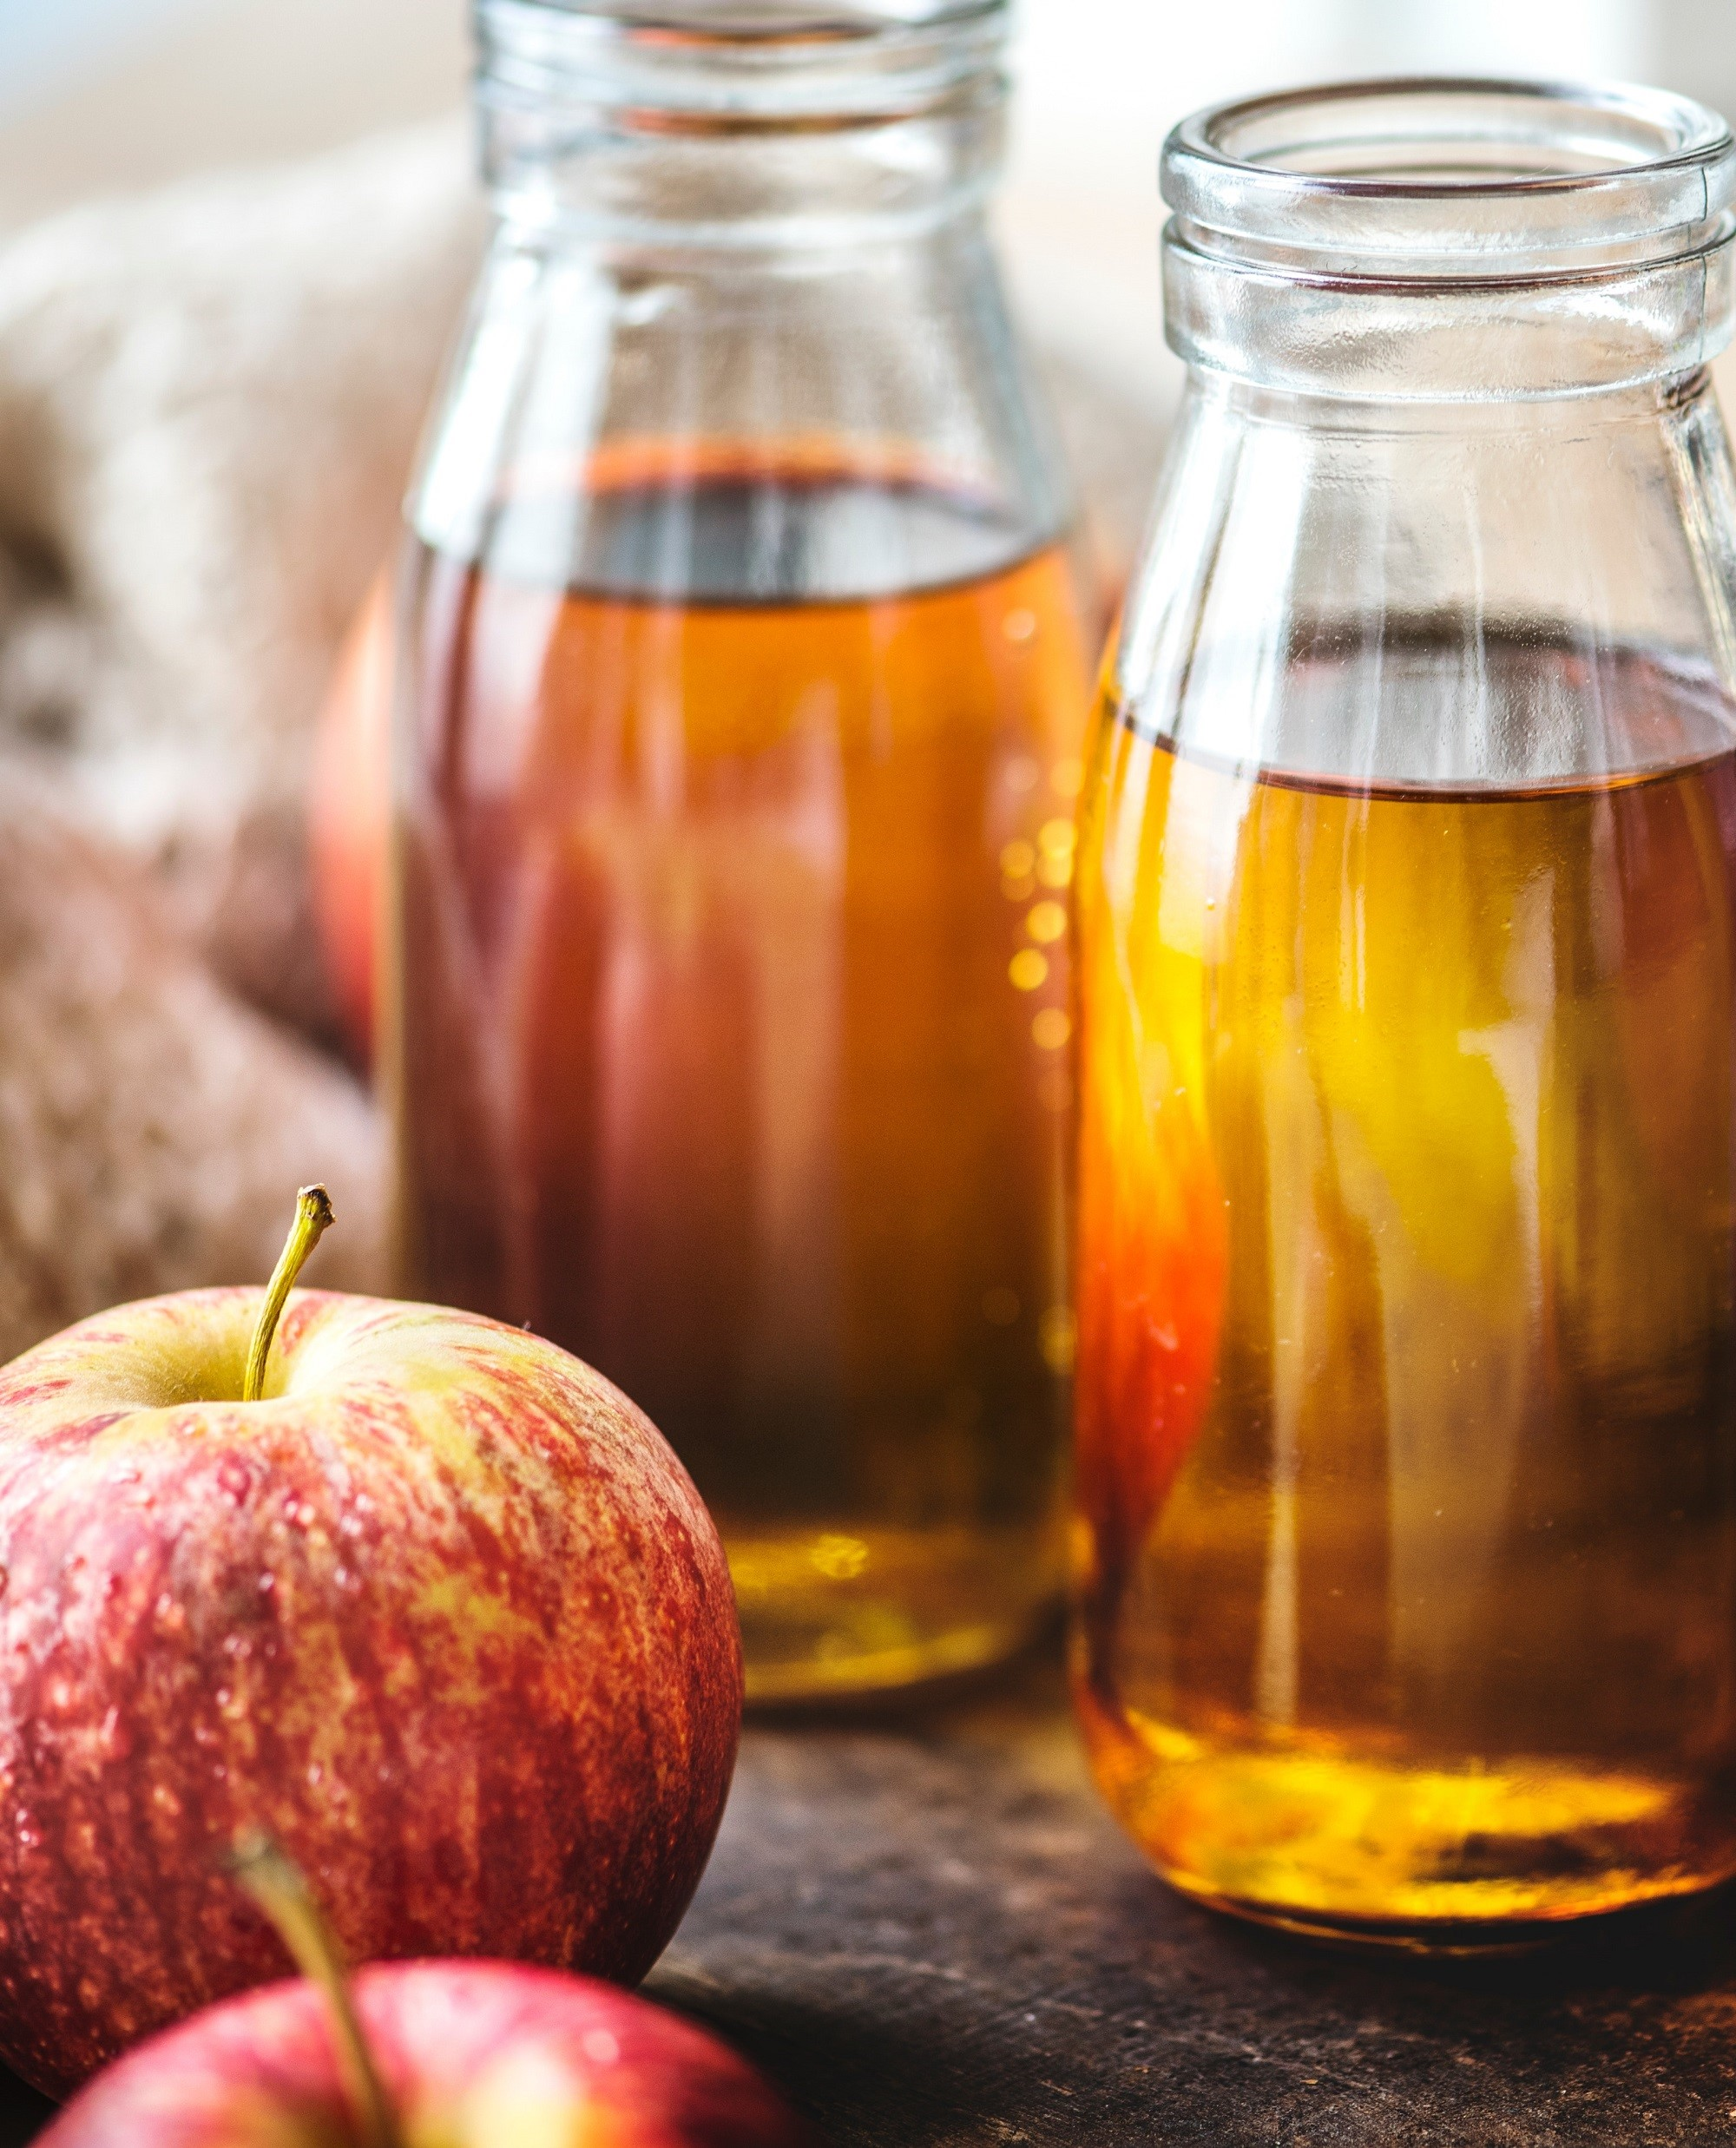 Douching after a period is a stellar idea.  It will help to mechanically remove old tissue that might be used as food by yeast.  Selecting a good apple cider vinegar to use as a douche is also a great accoutermentary idea; as it will acidify the vagina.